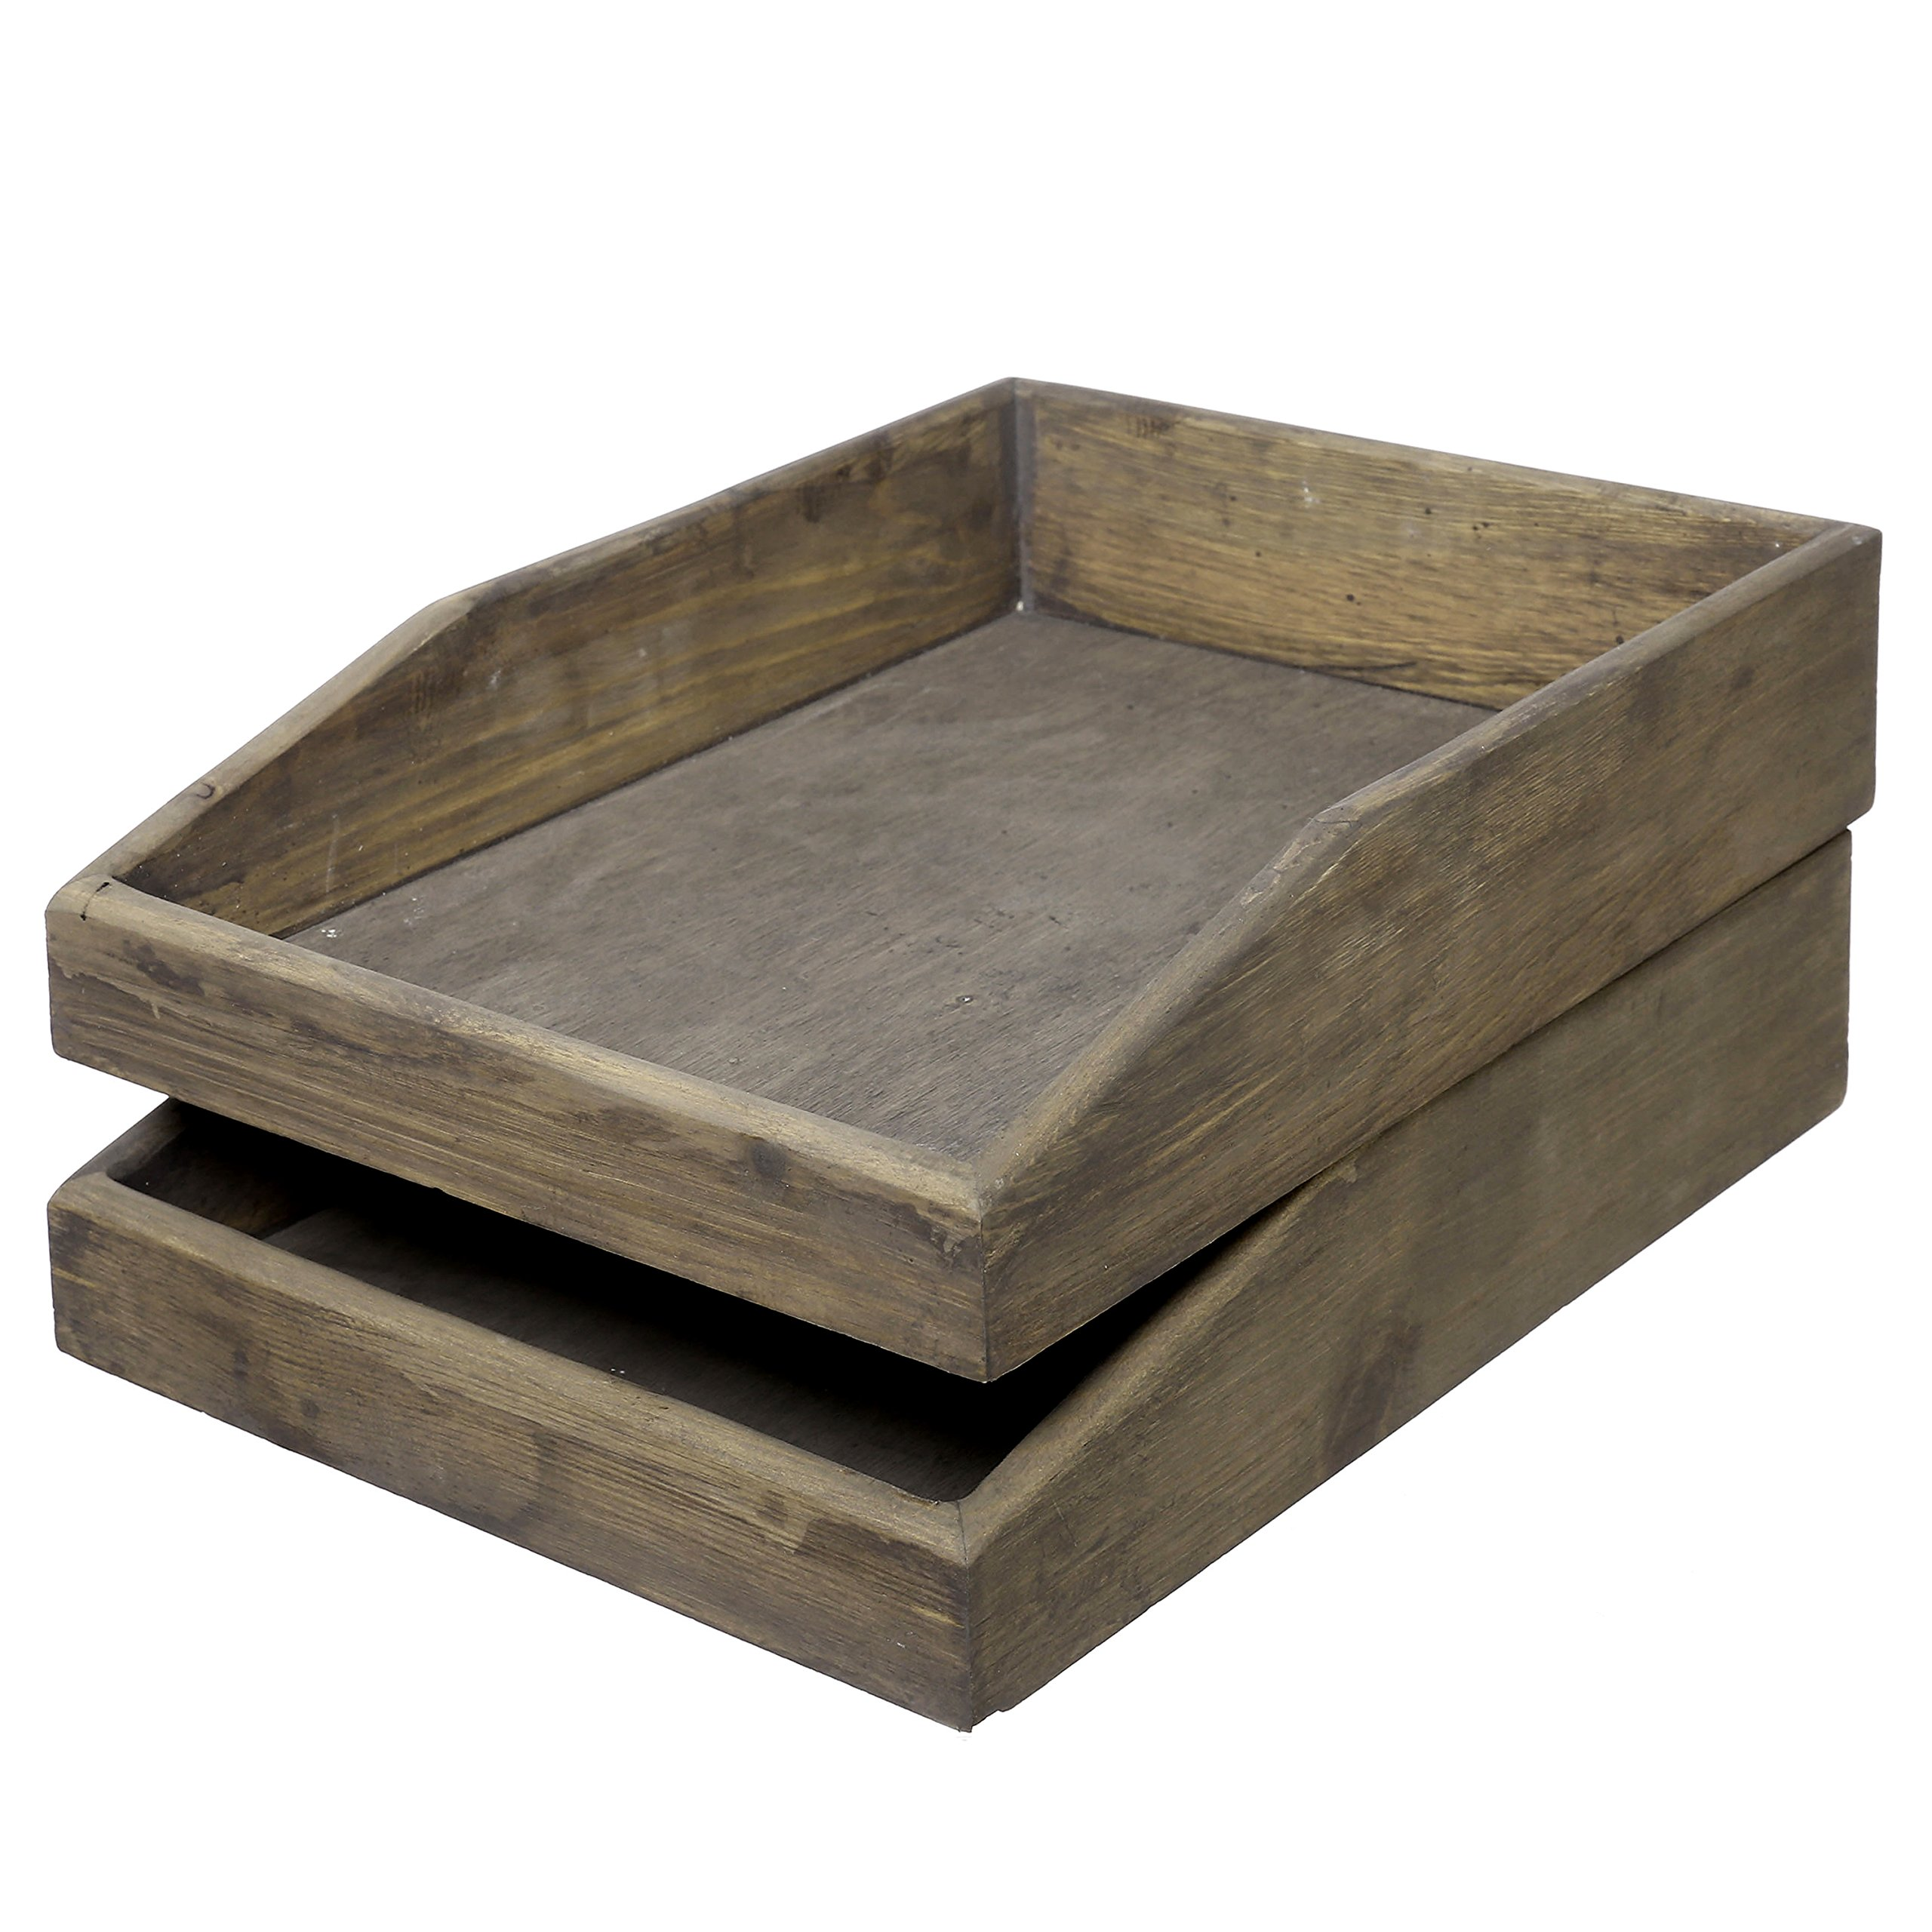 Set of 2 Barnwood Gray Wooden Stackable Document & Paper Trays by MyGift (Image #1)